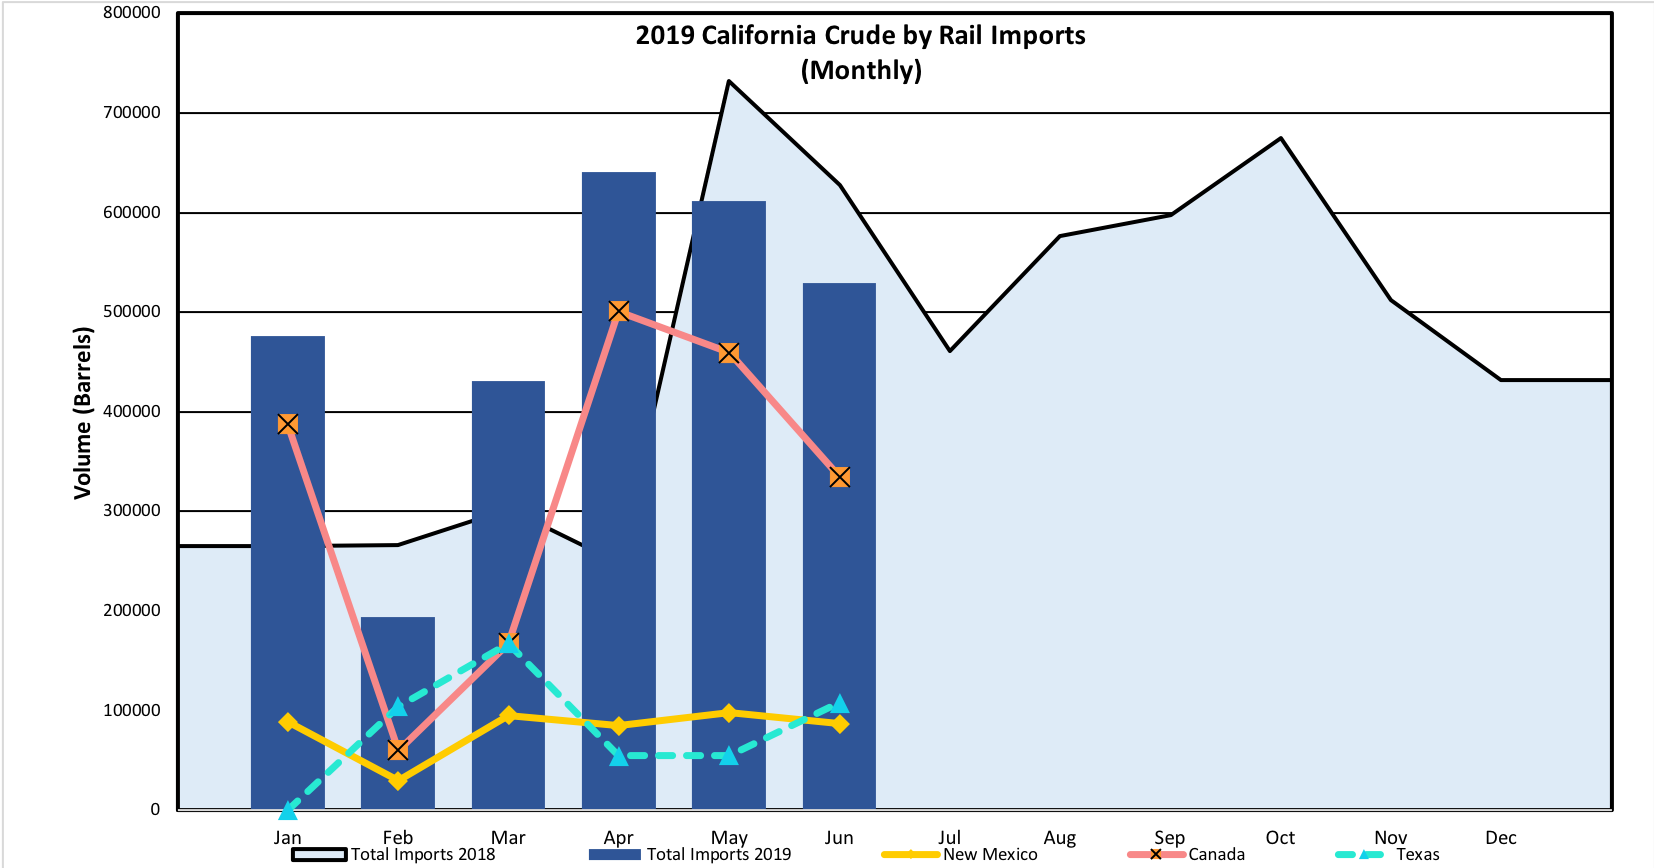 Graph of crude by rail numbers